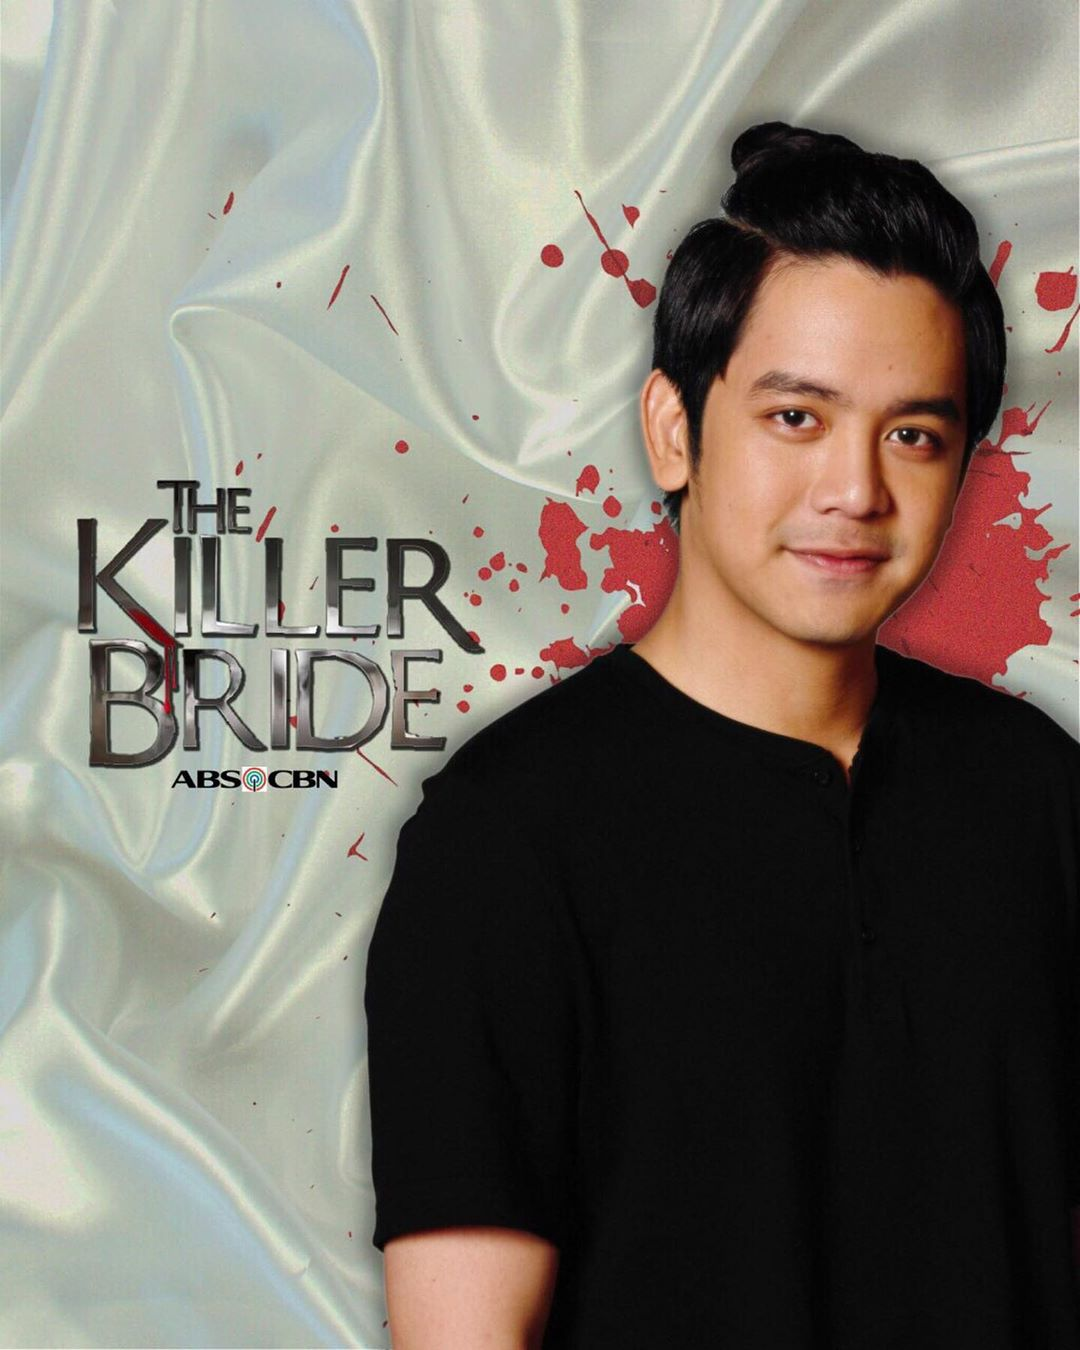 Joshua Garcia in The Killer Bride 2019